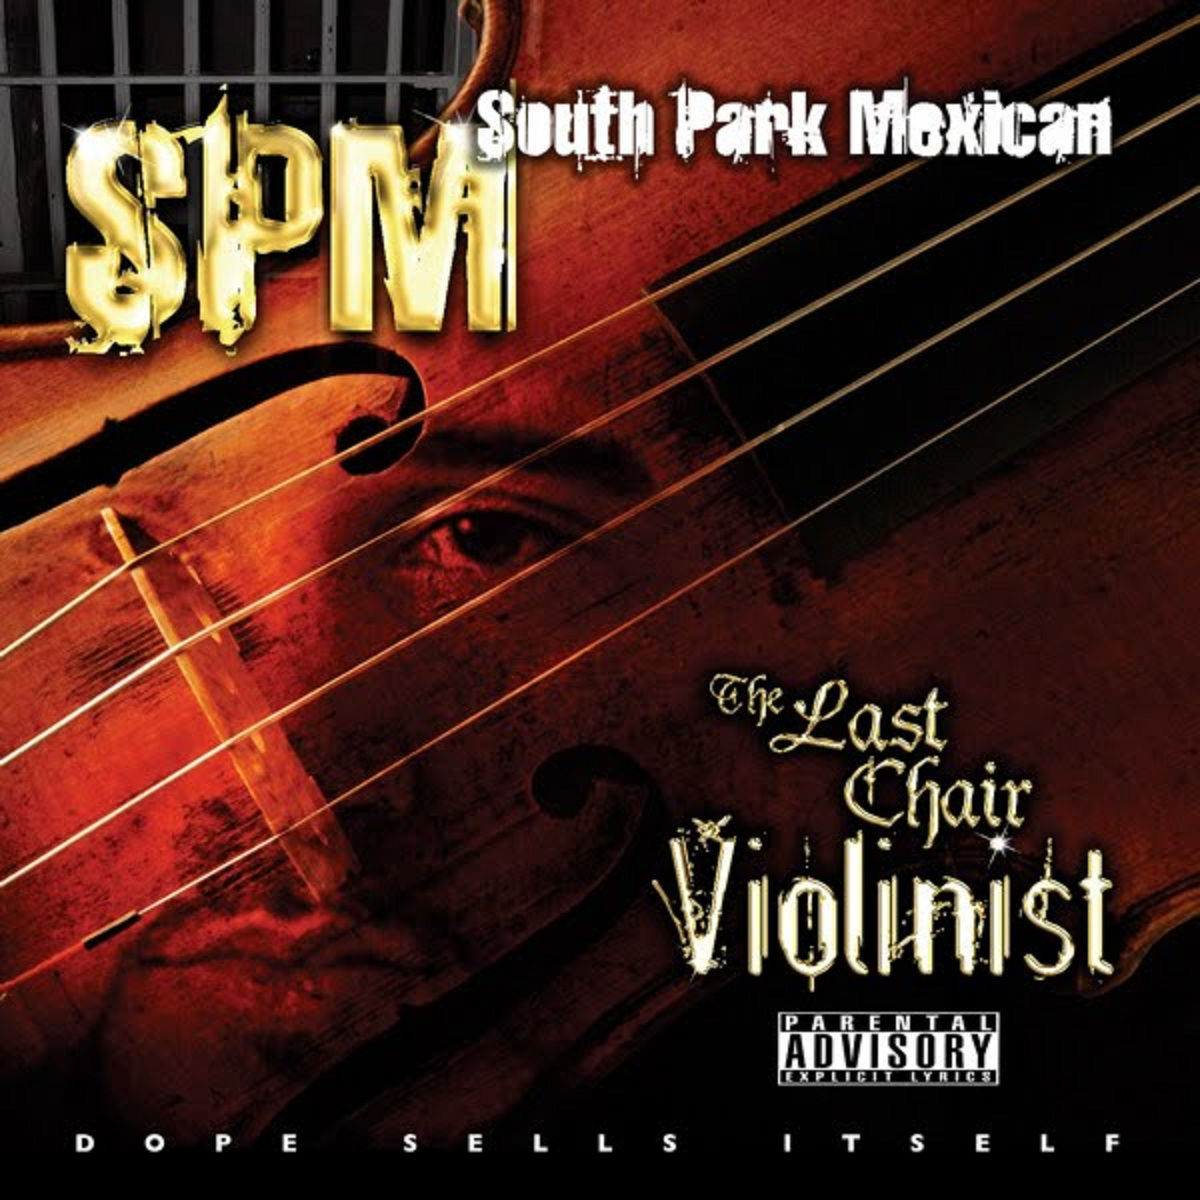 Image source certifiedstunnateam.blogspot.com & Image - South Park Mexican - Last Chair Violinist.jpg | LyricWiki ...